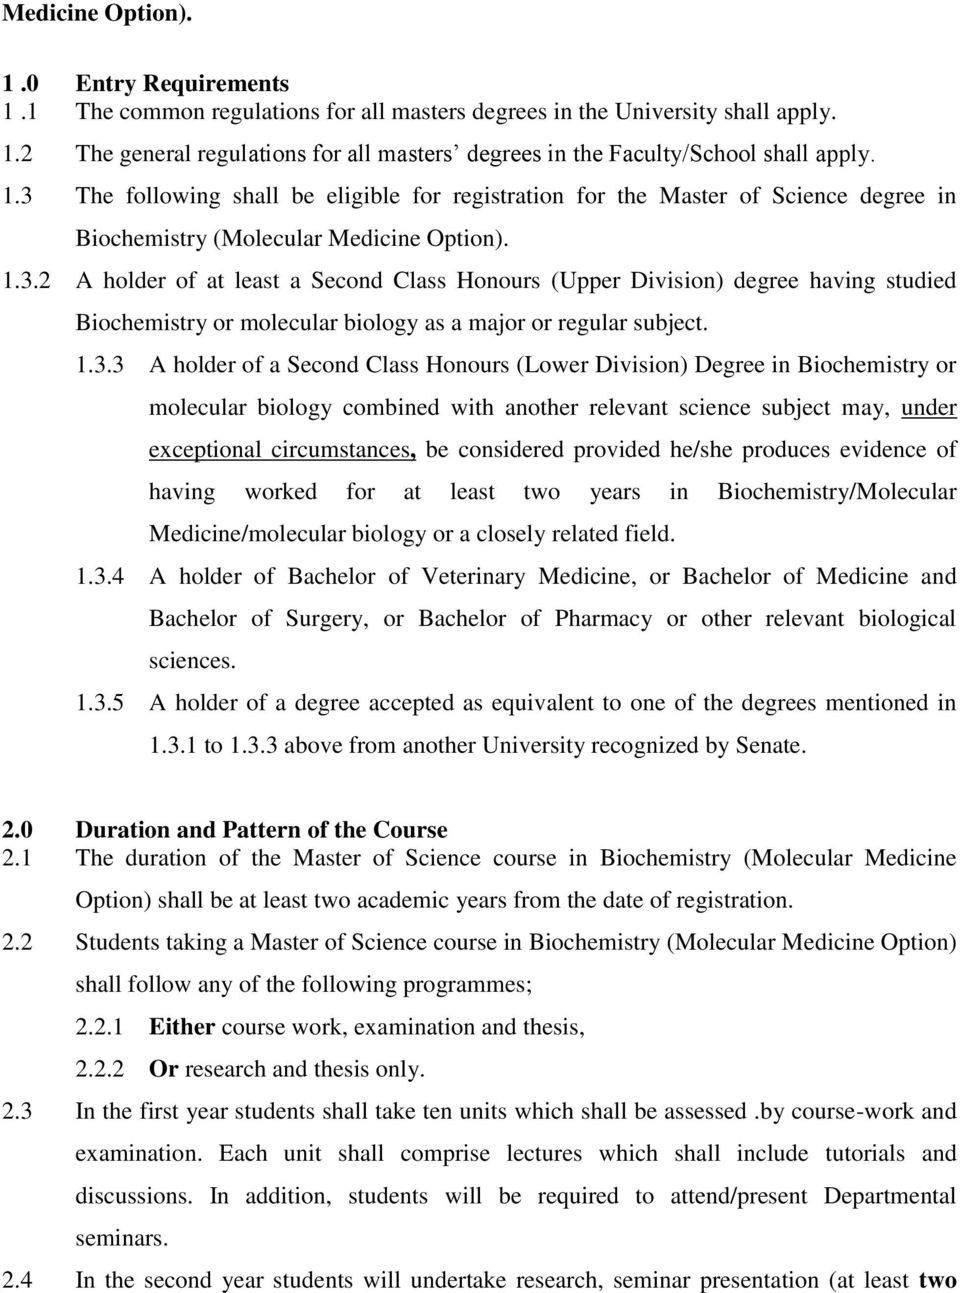 1.3.3 A holder of a Second Class Honours (Lower Division) Degree in Biochemistry or molecular biology combined with another relevant science subject may, under exceptional circumstances, be